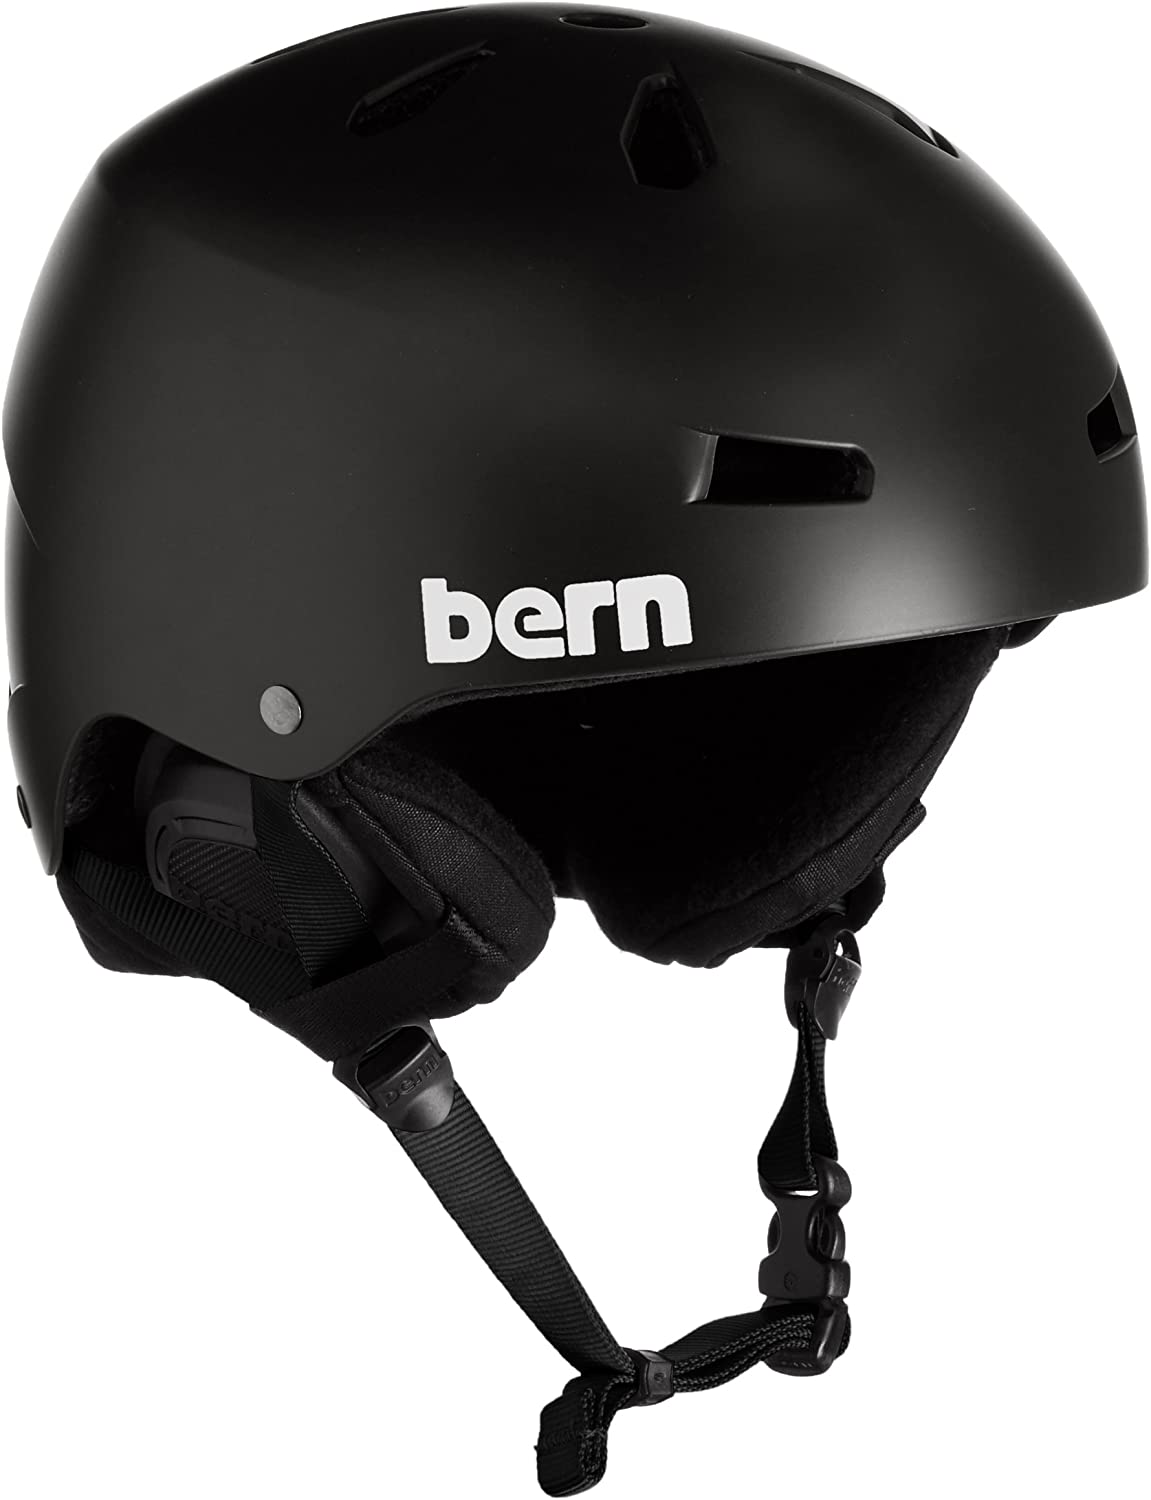 Bern, Multi Sport Helmet for Kids and Adults Bike Skate, Team Macon, Multiple Colors and Sizes